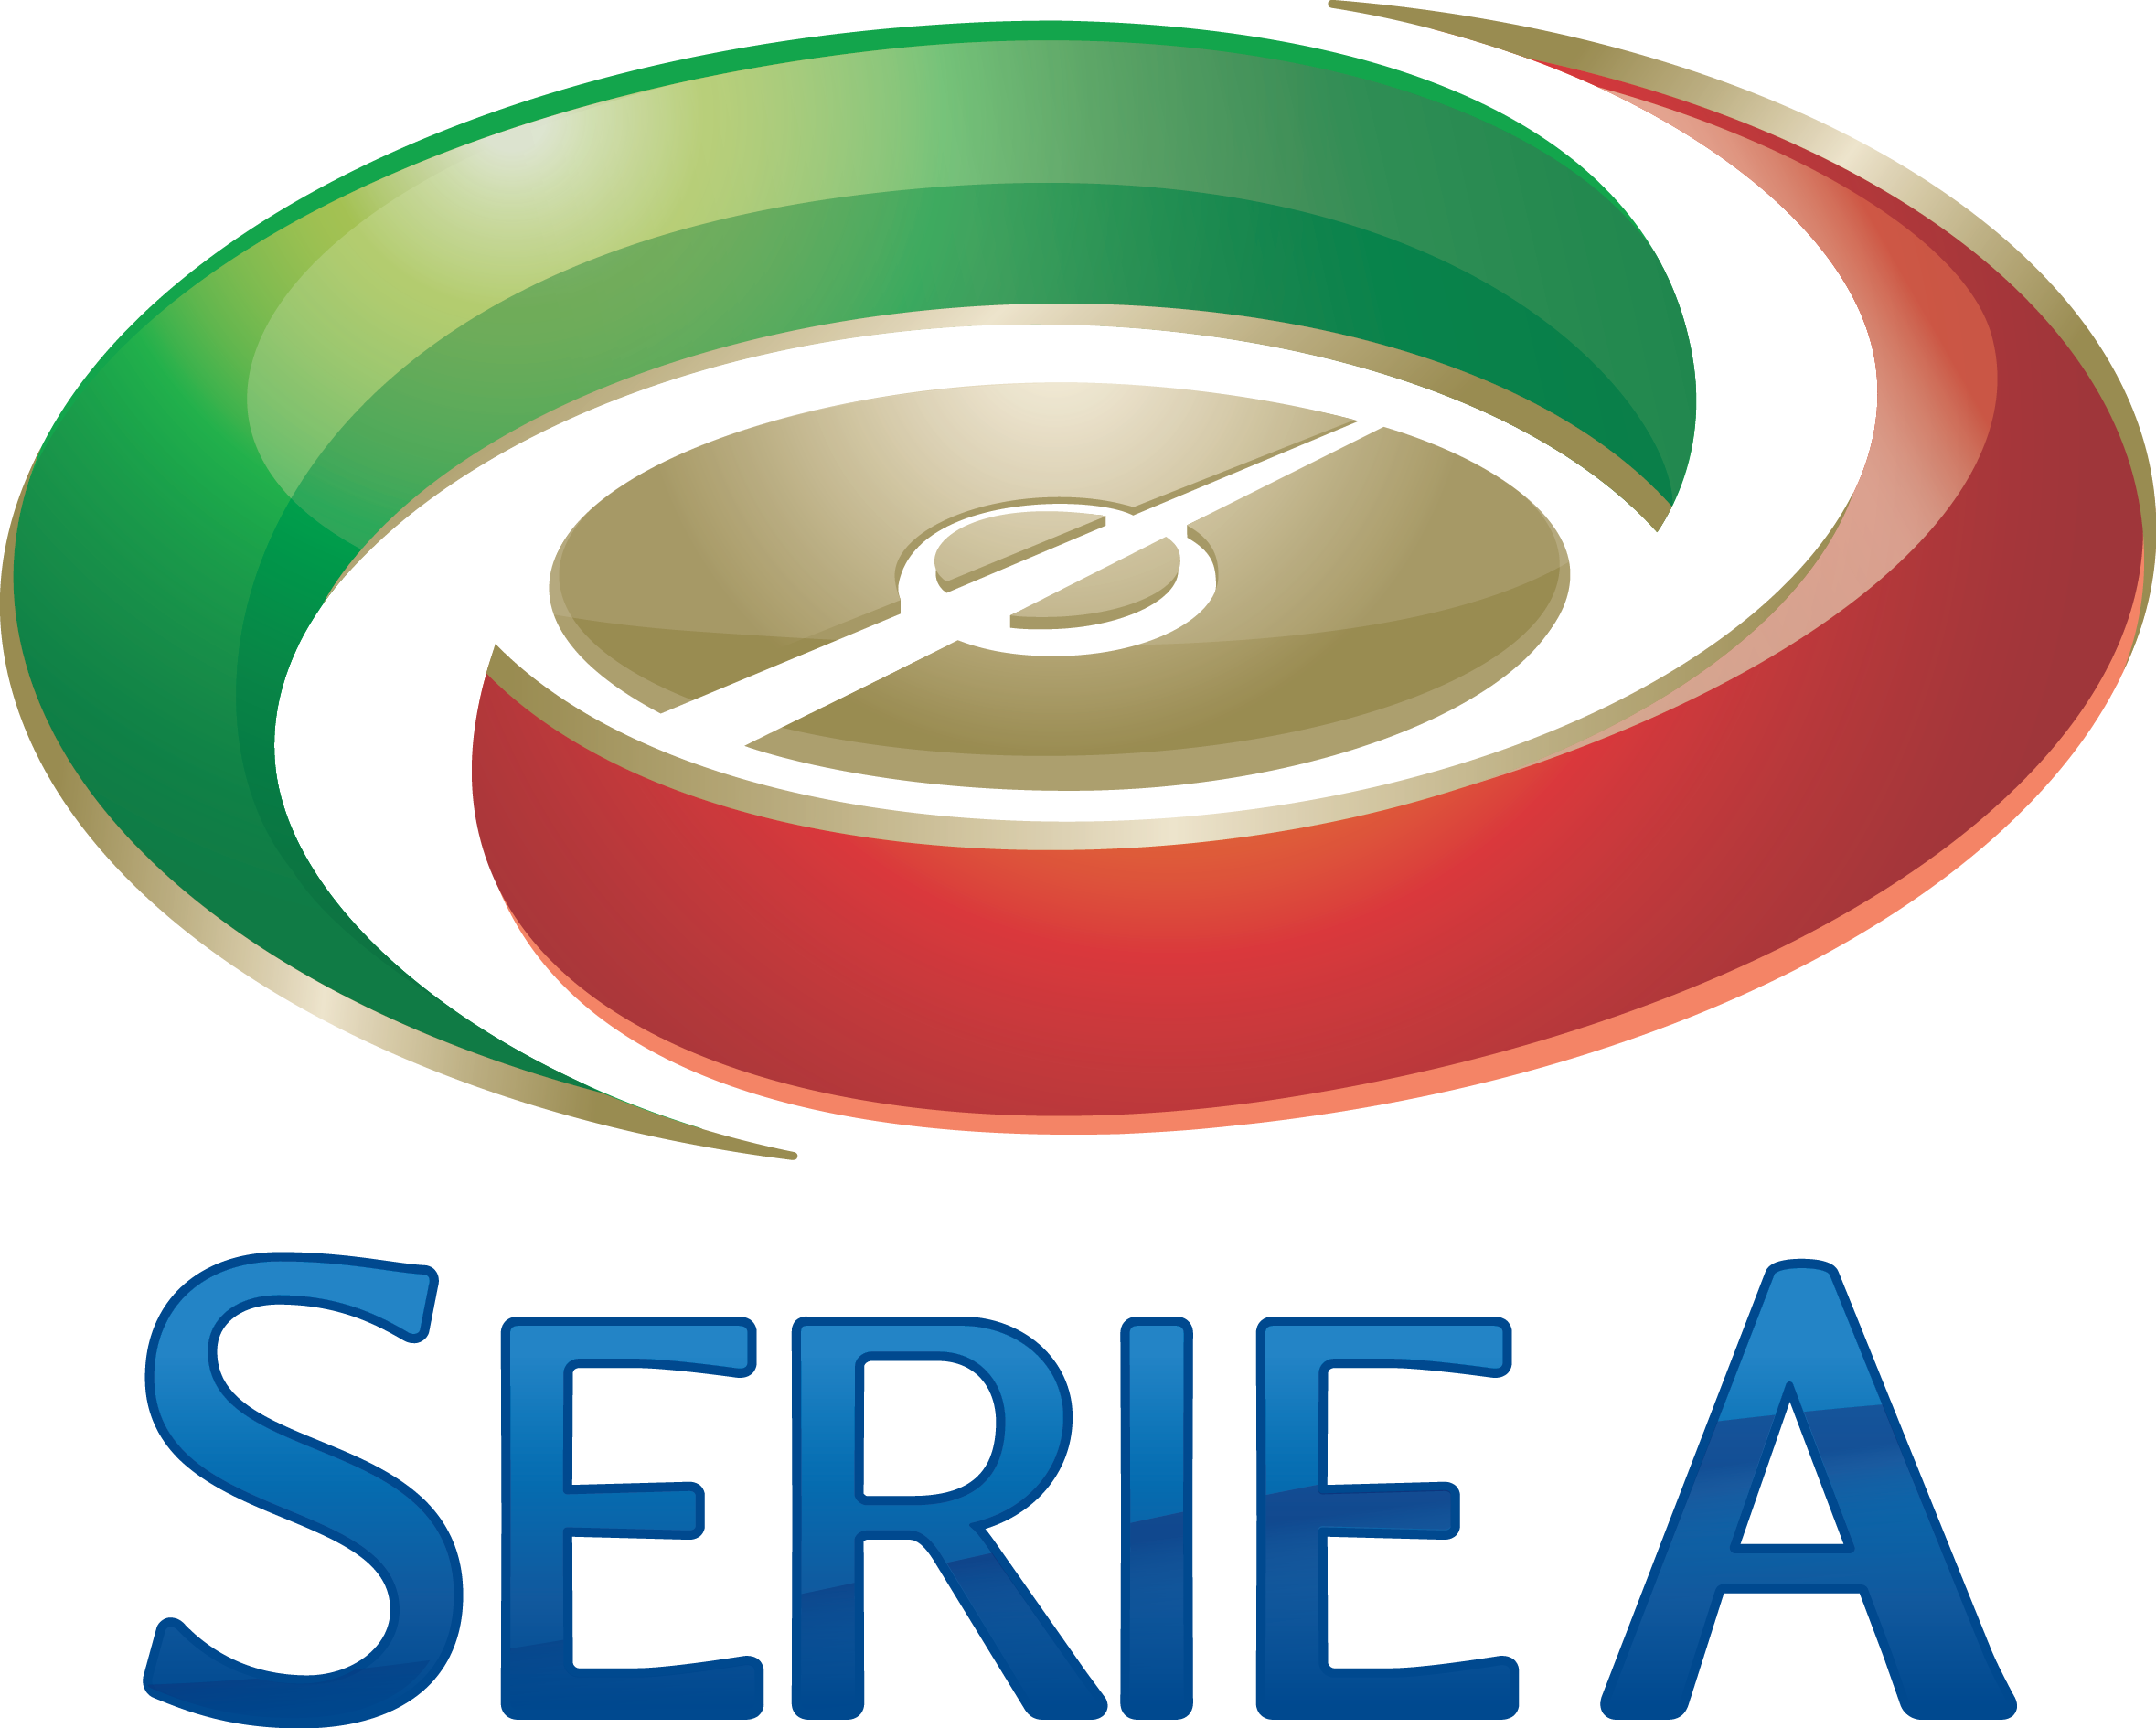 Palermo vs Genoa 2-1 All goals and highlights 19/04/2015